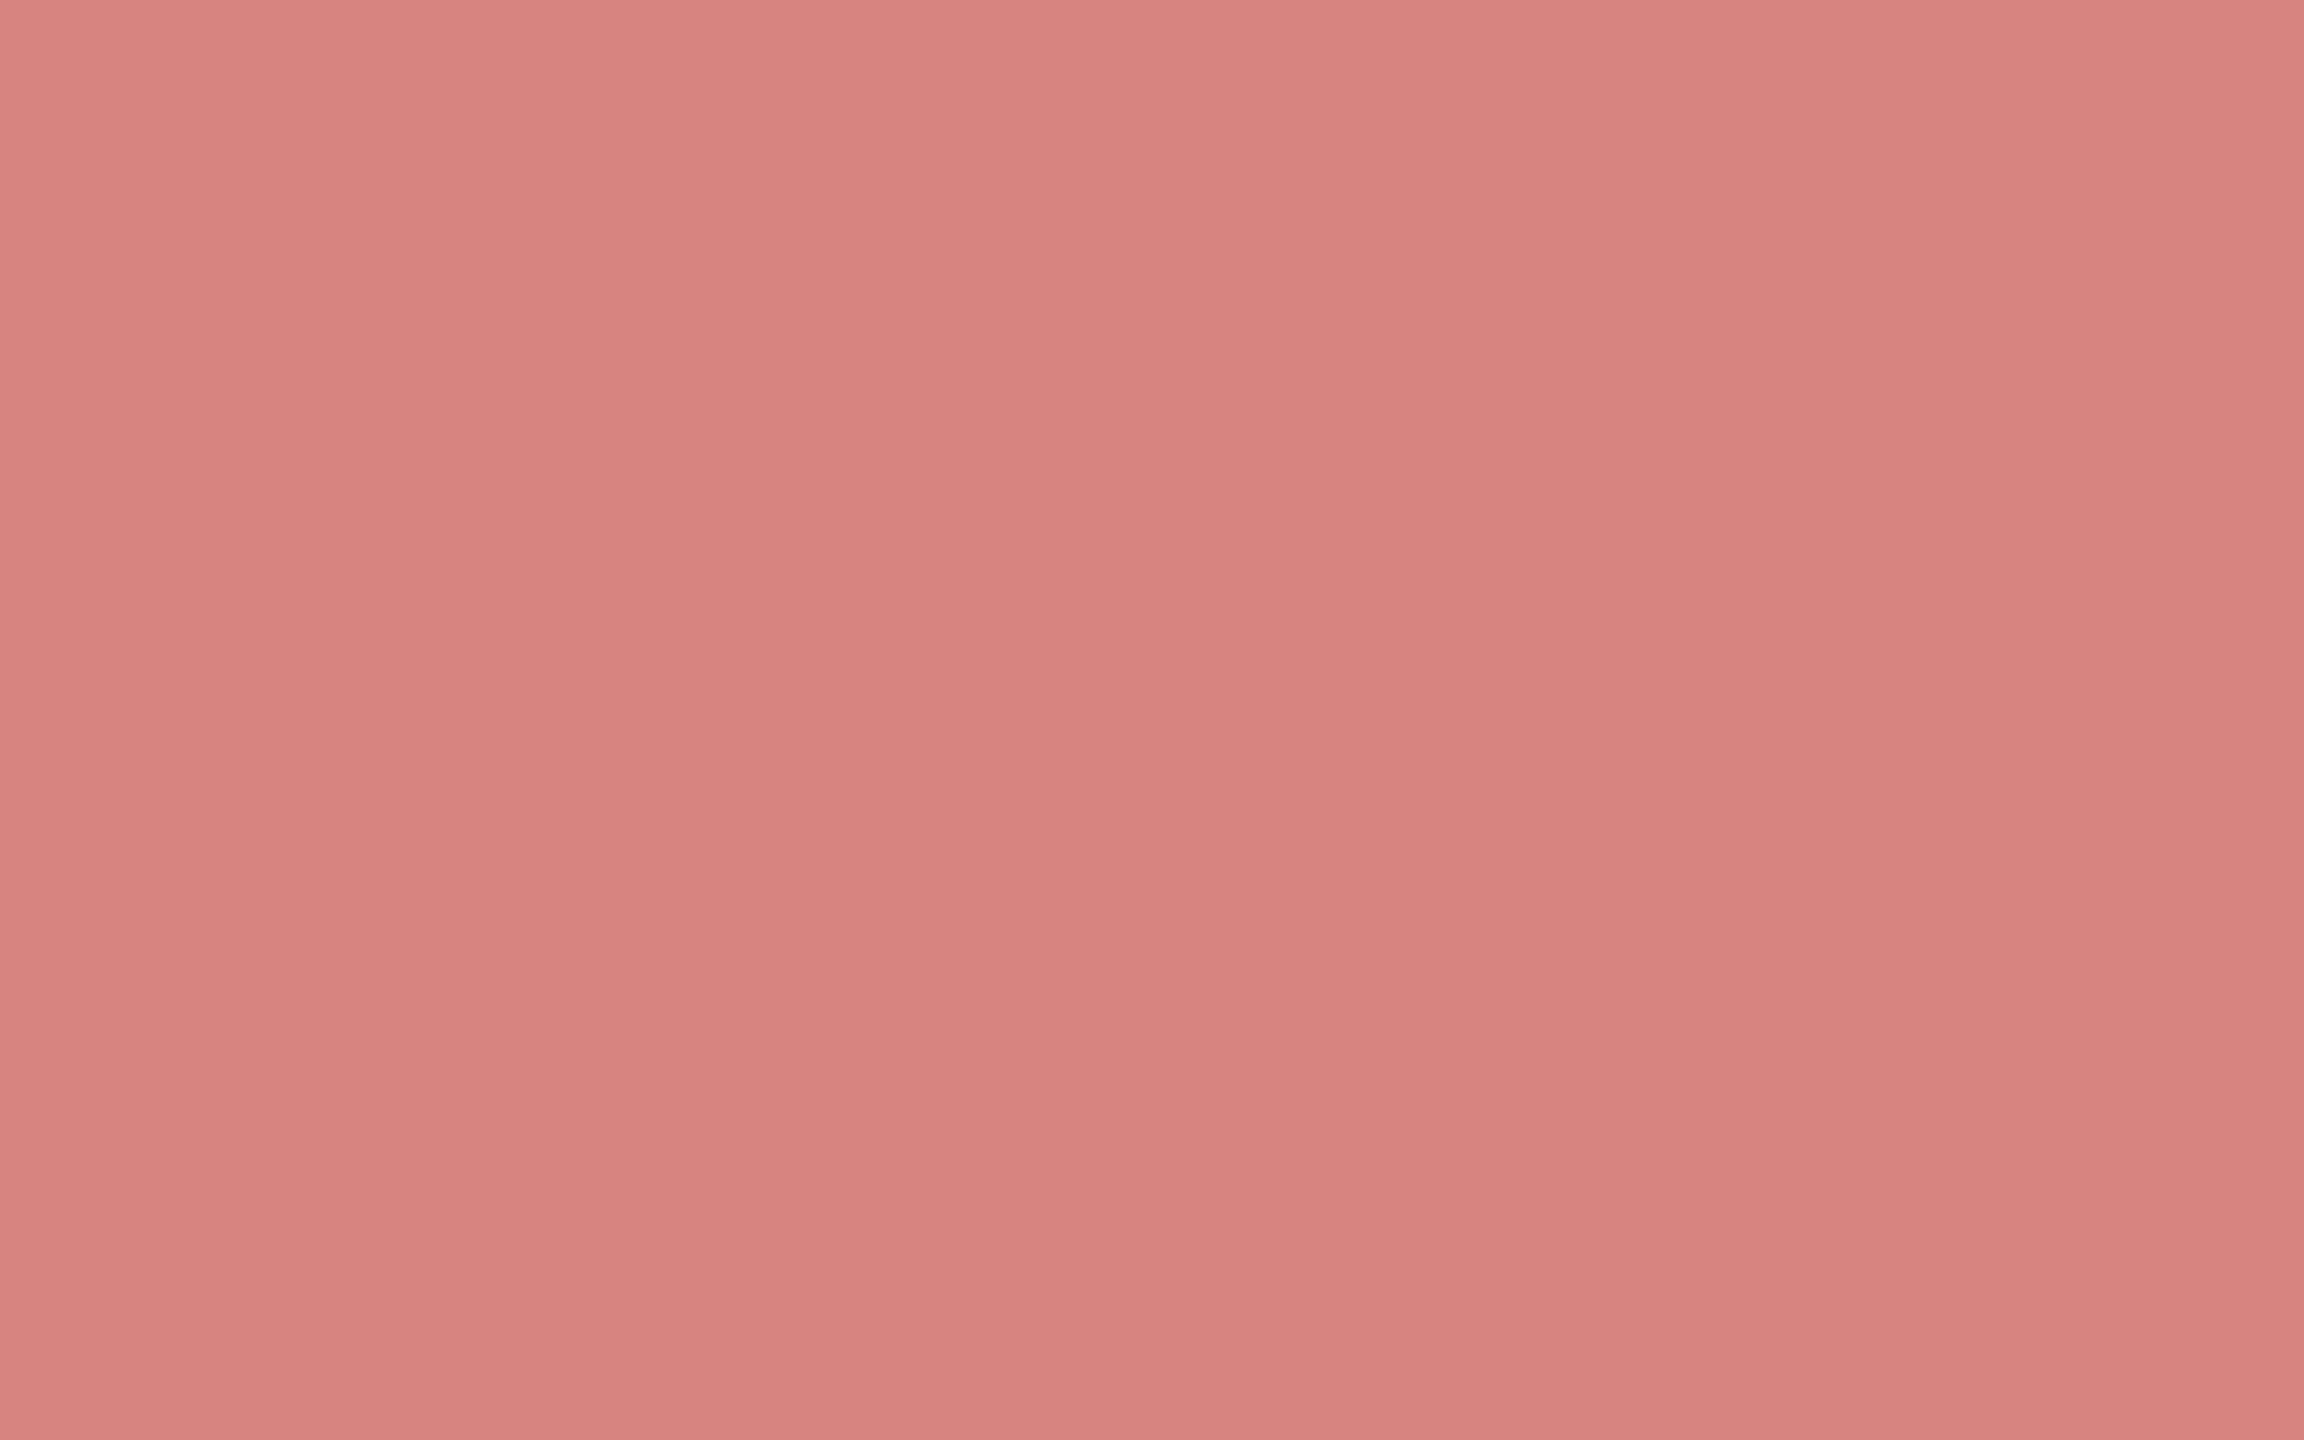 2304x1440 New York Pink Solid Color Background